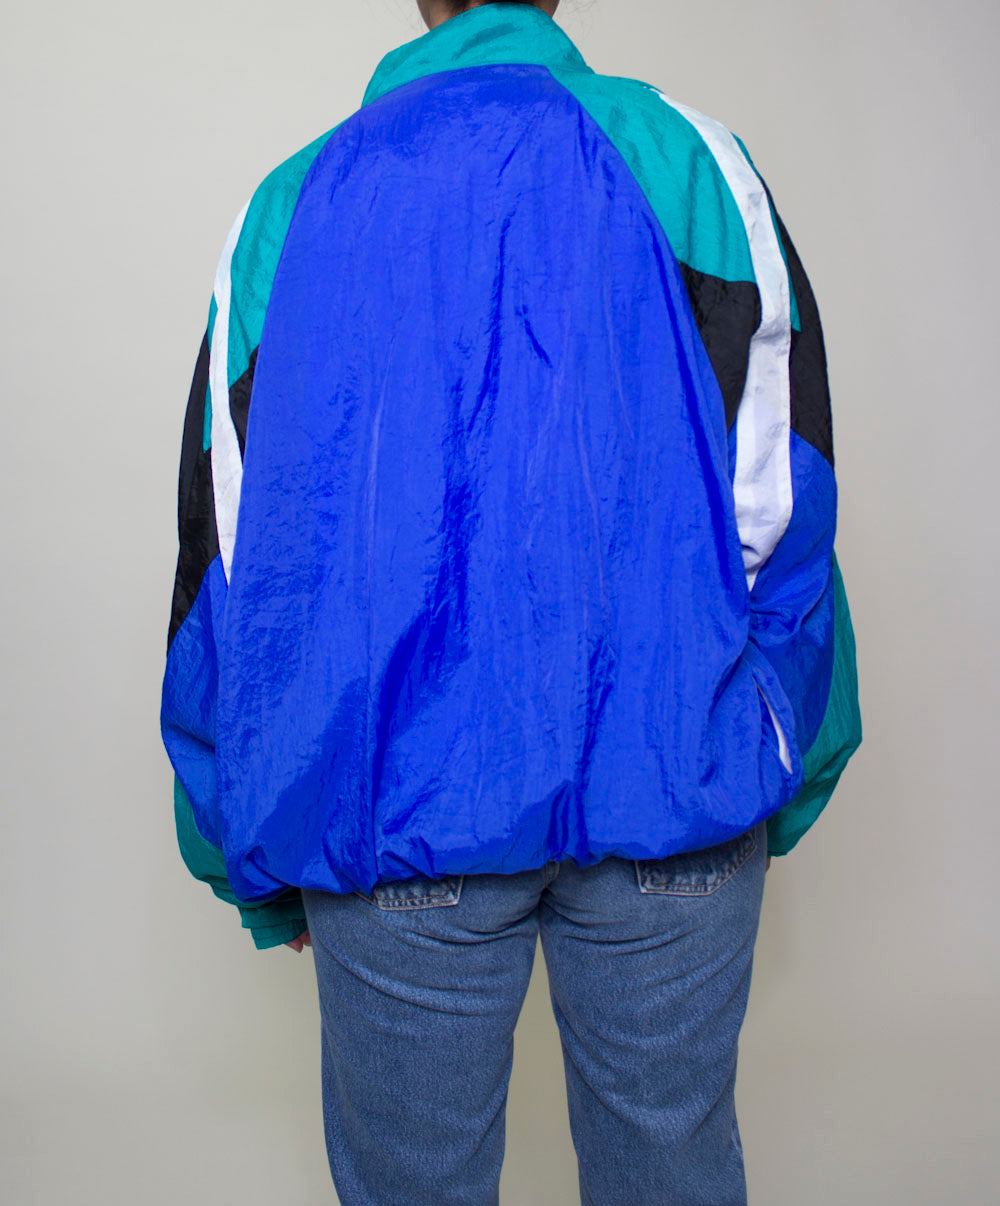 Aquatic Windbreaker